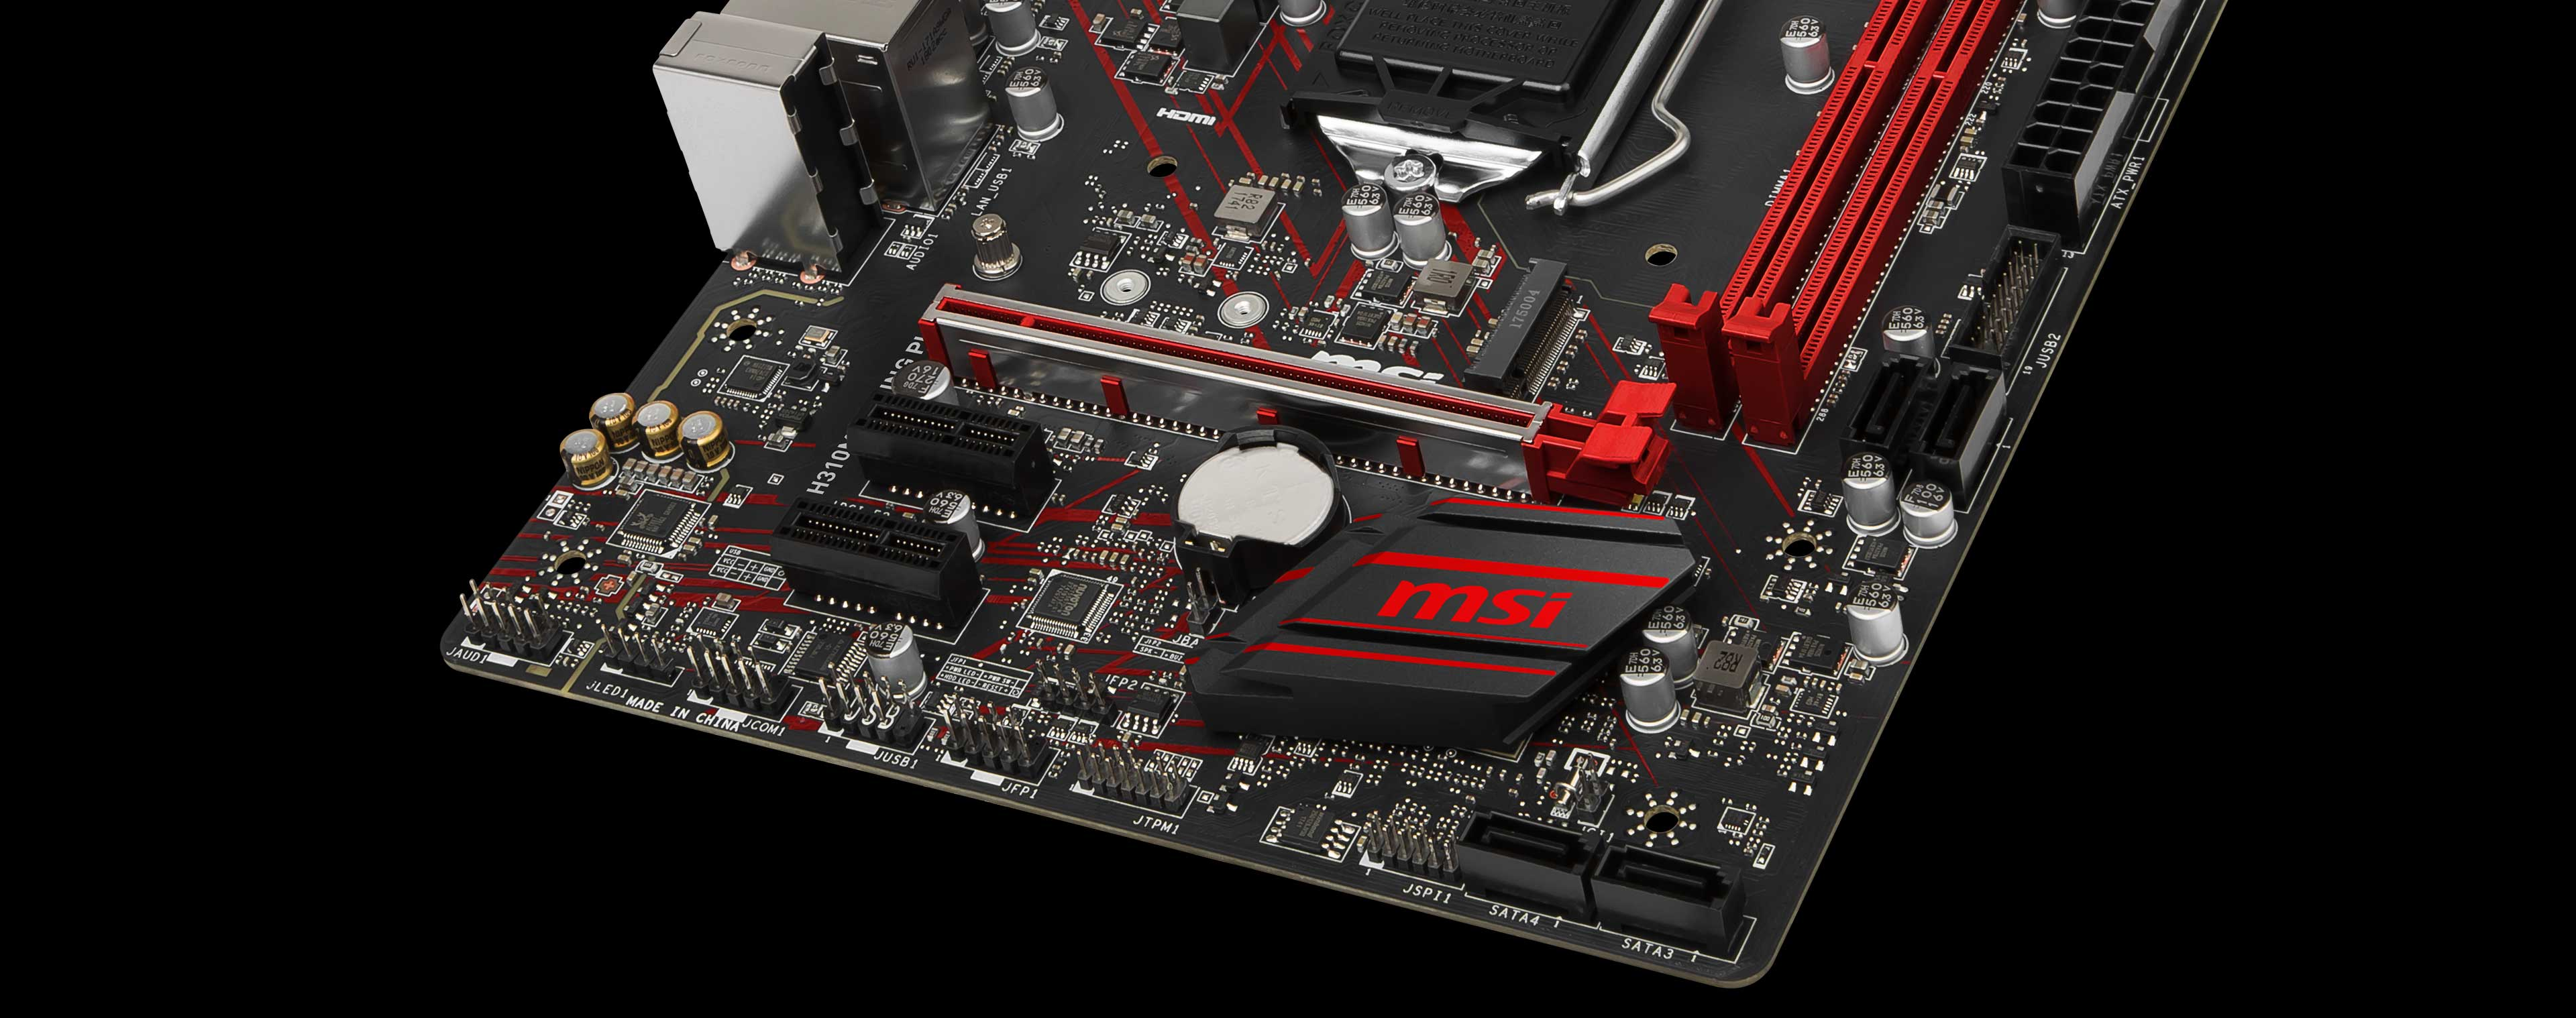 H310M GAMING PLUS | Motherboard - The world leader in